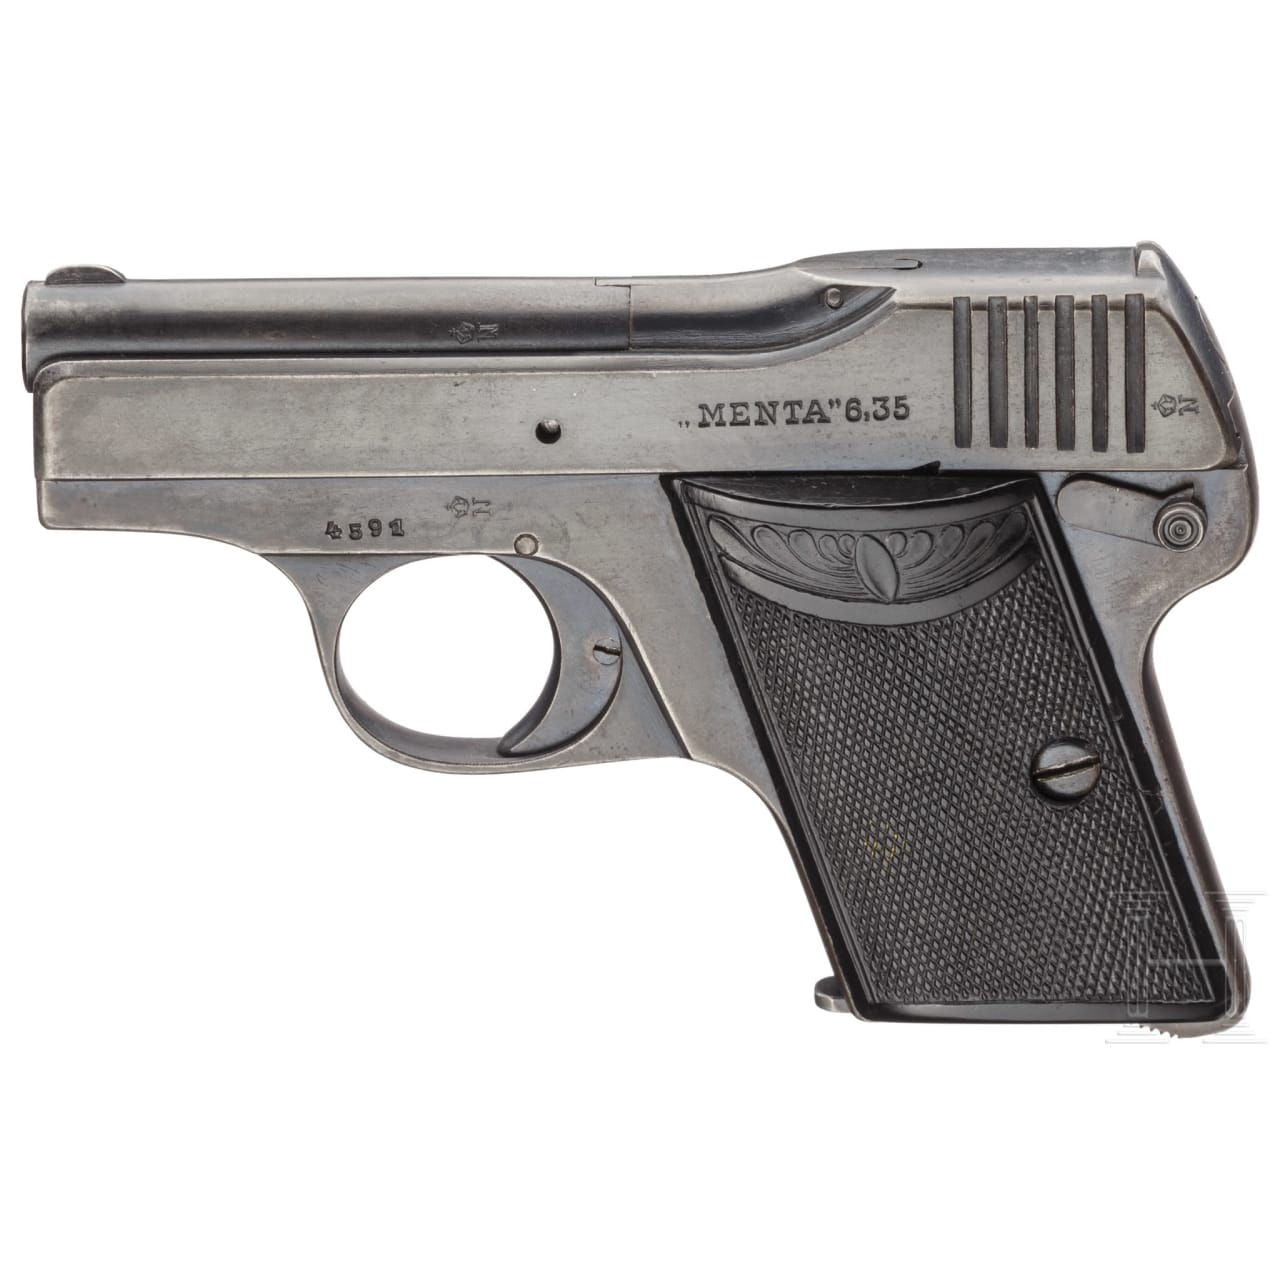 A Menta pocket pistol